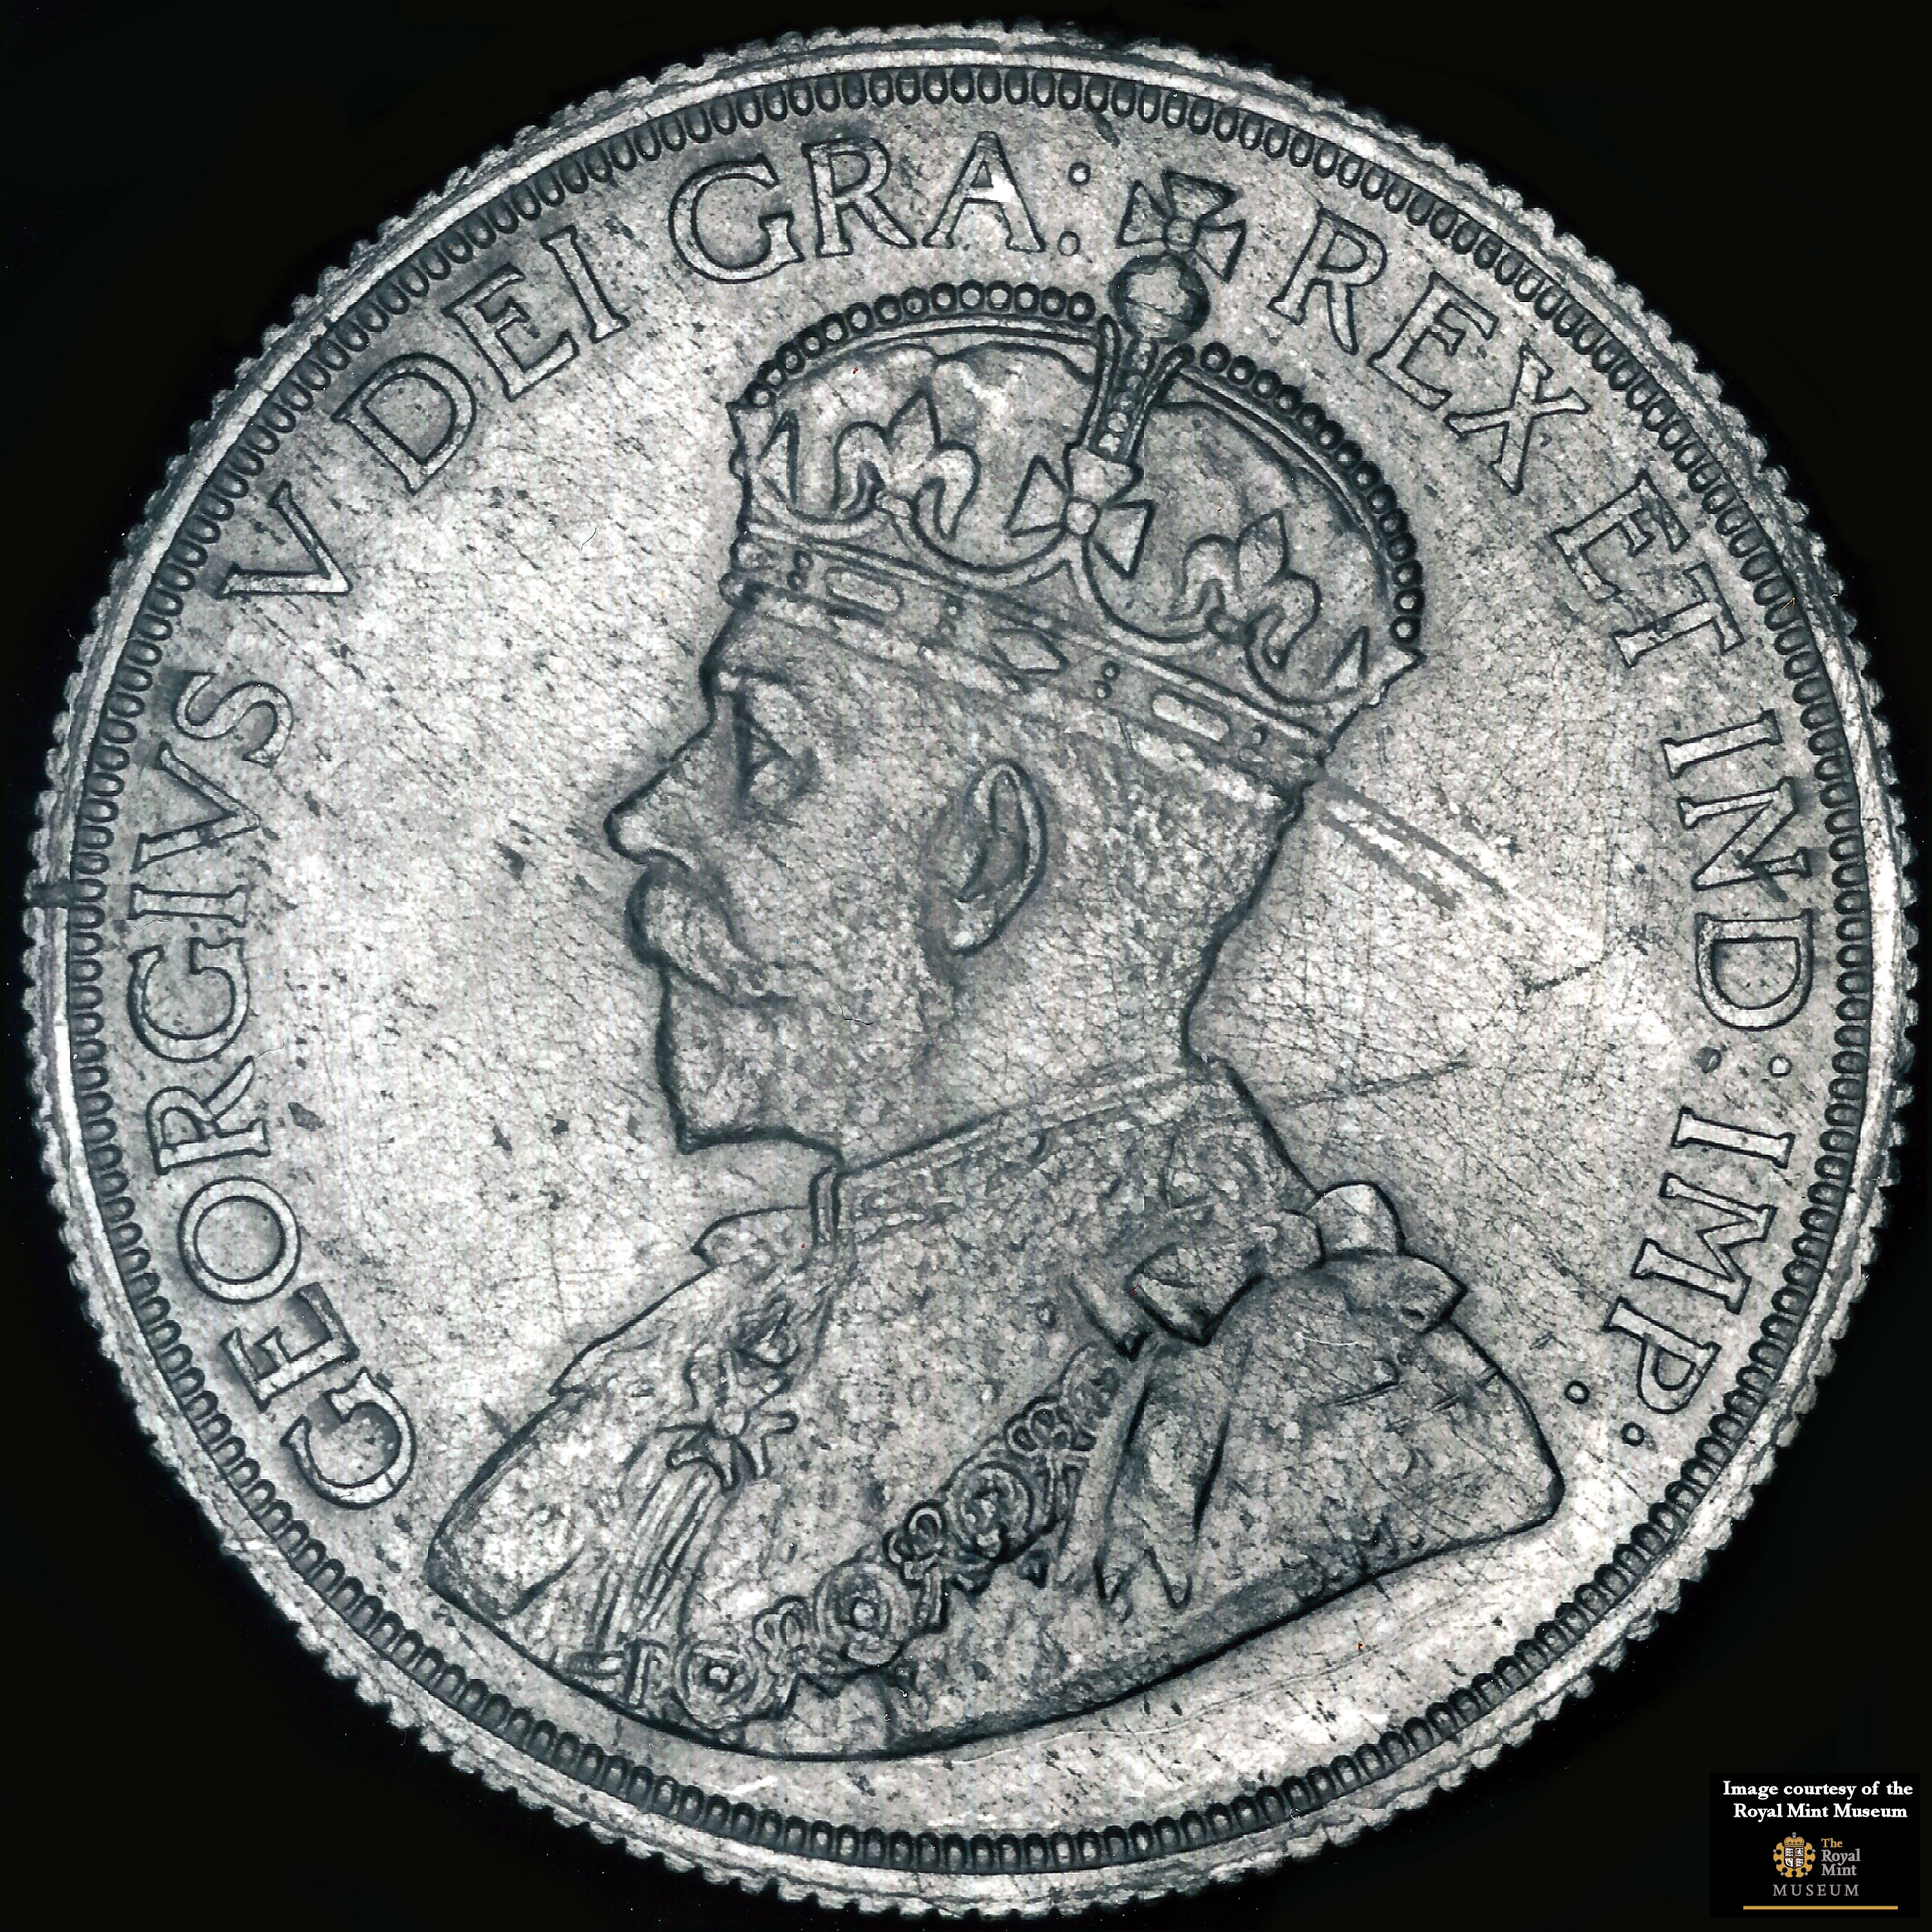 PHOTO MAGNET CANADA 1911 King George V 10 cents Reproduction